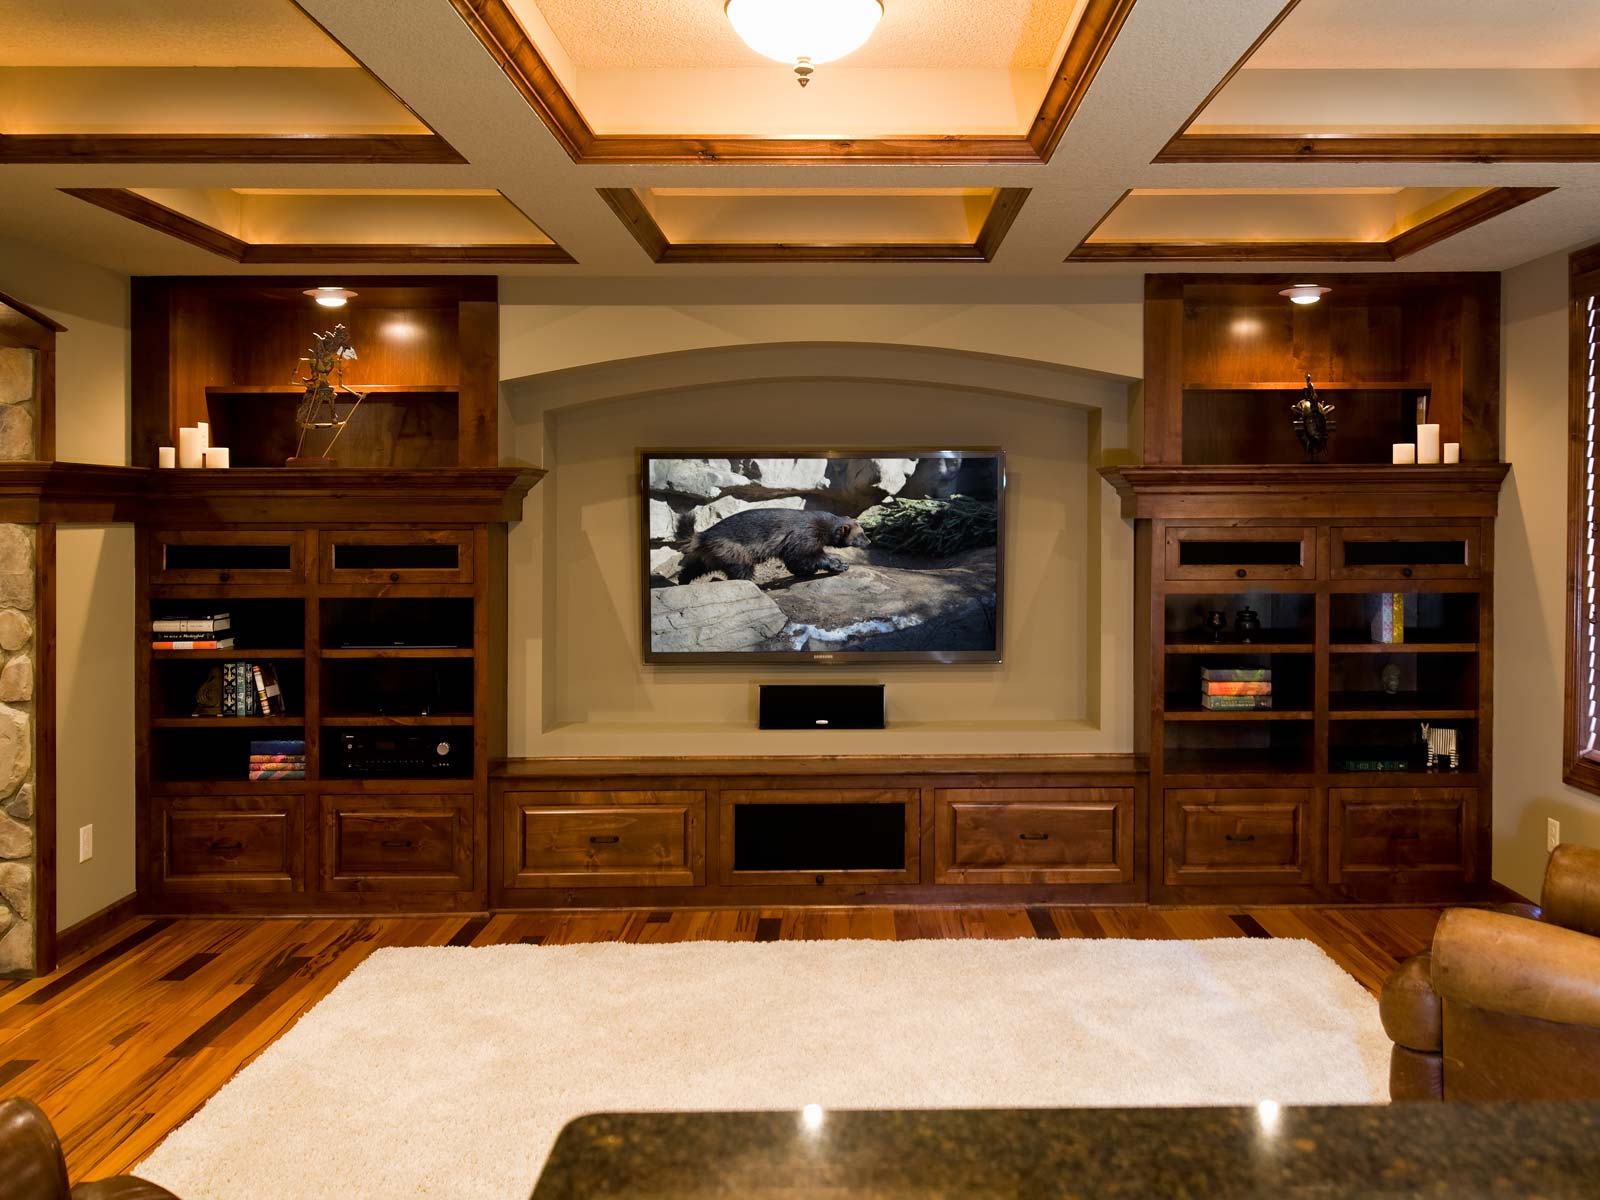 Basement-Home-Theater-Wood-Trim